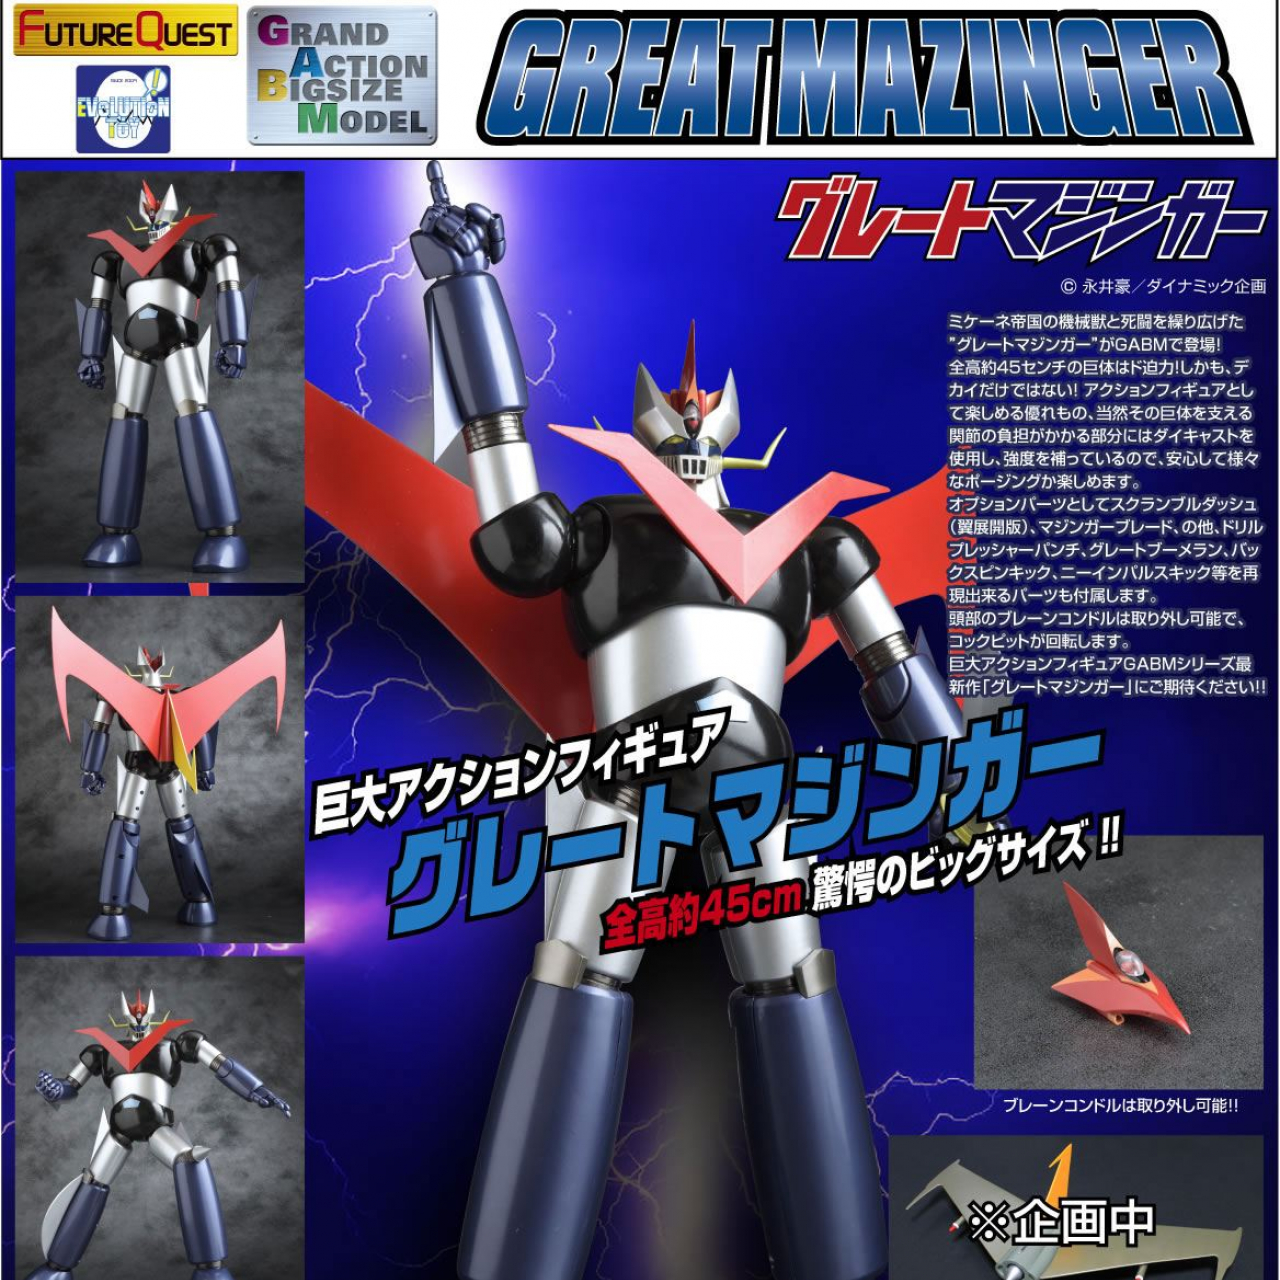 Great Mazinger Grand Action Bigsize Model Action Figure Great Mazinger 45 cm